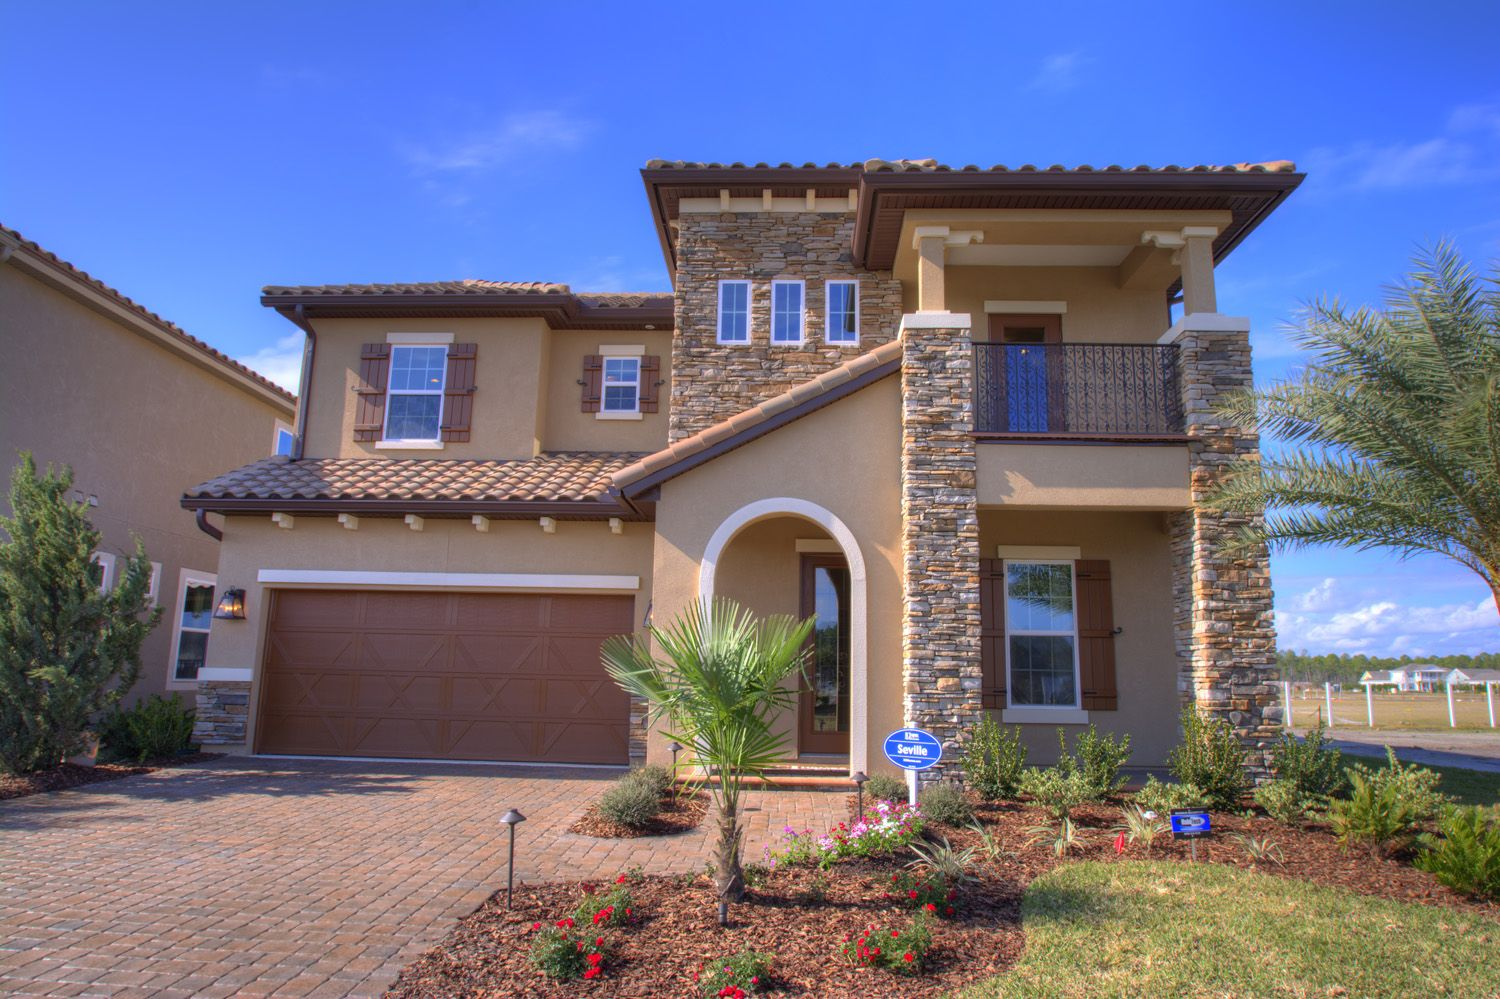 The Seville Model by ICI Homes in Siena at Town Center of ... on beazer homes design center, shea homes design center, ryland homes design center,